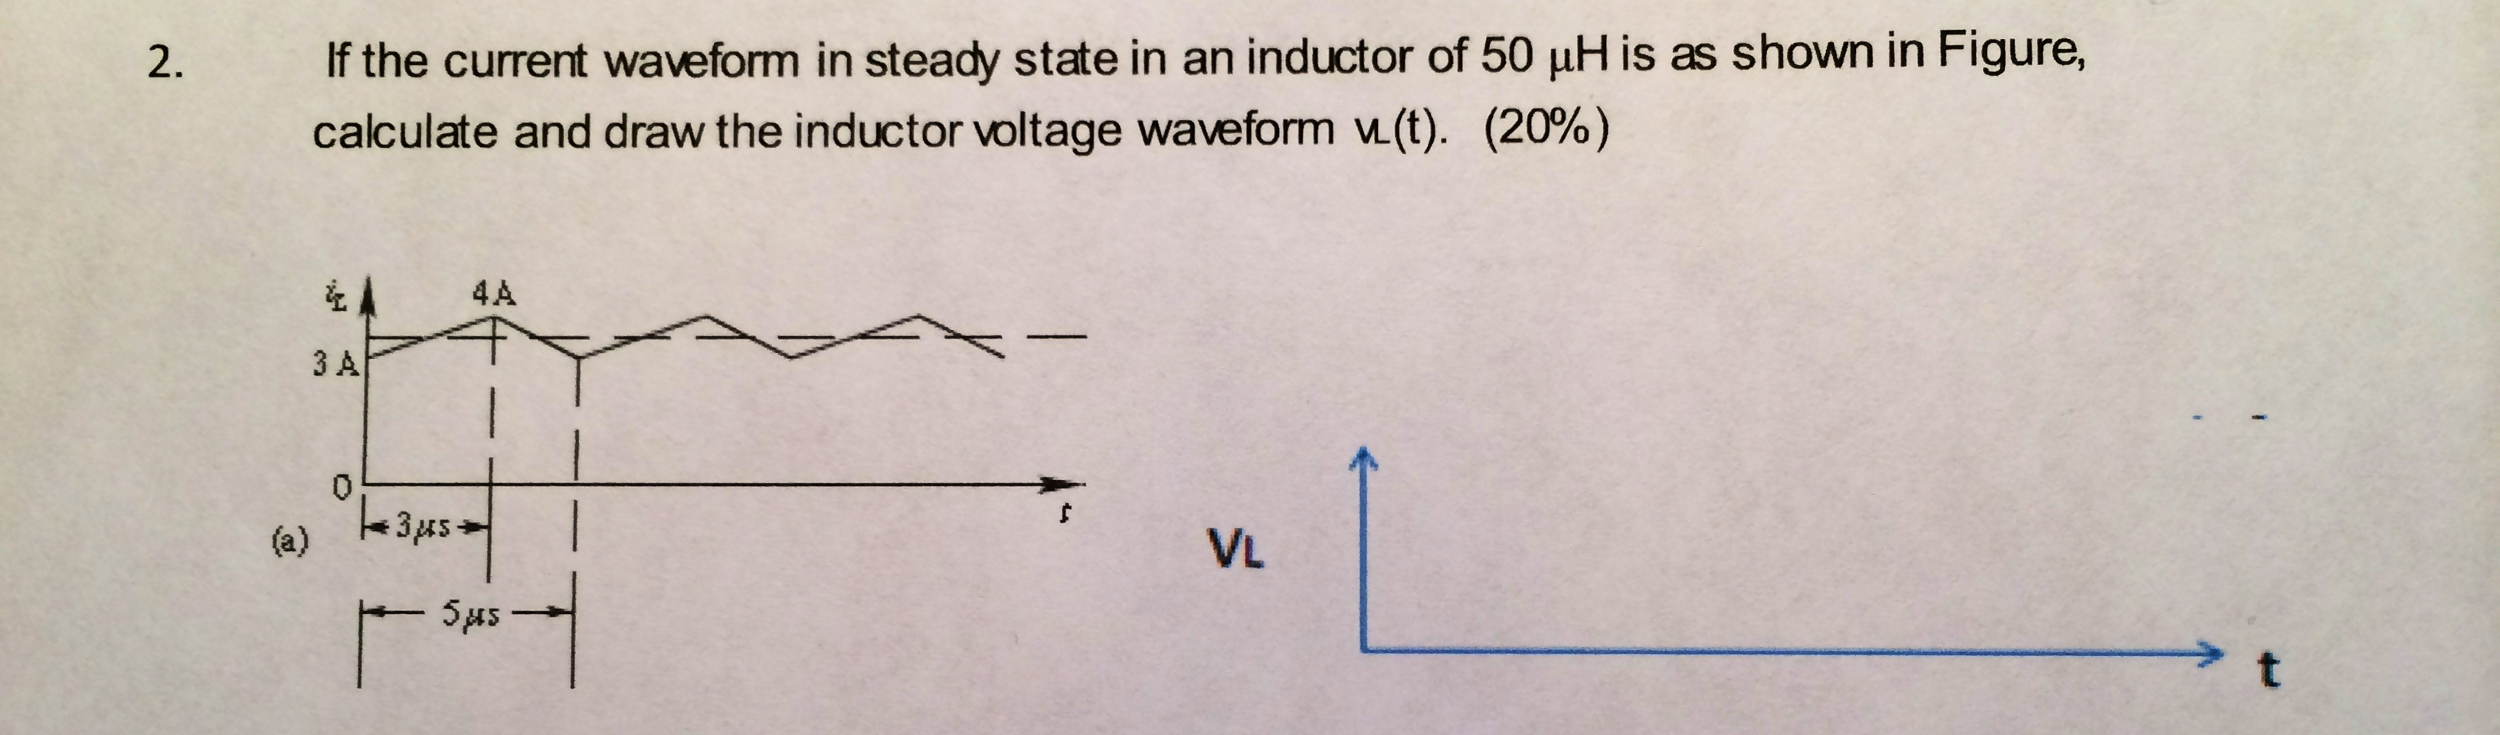 If the current waveform in steady state in an indu